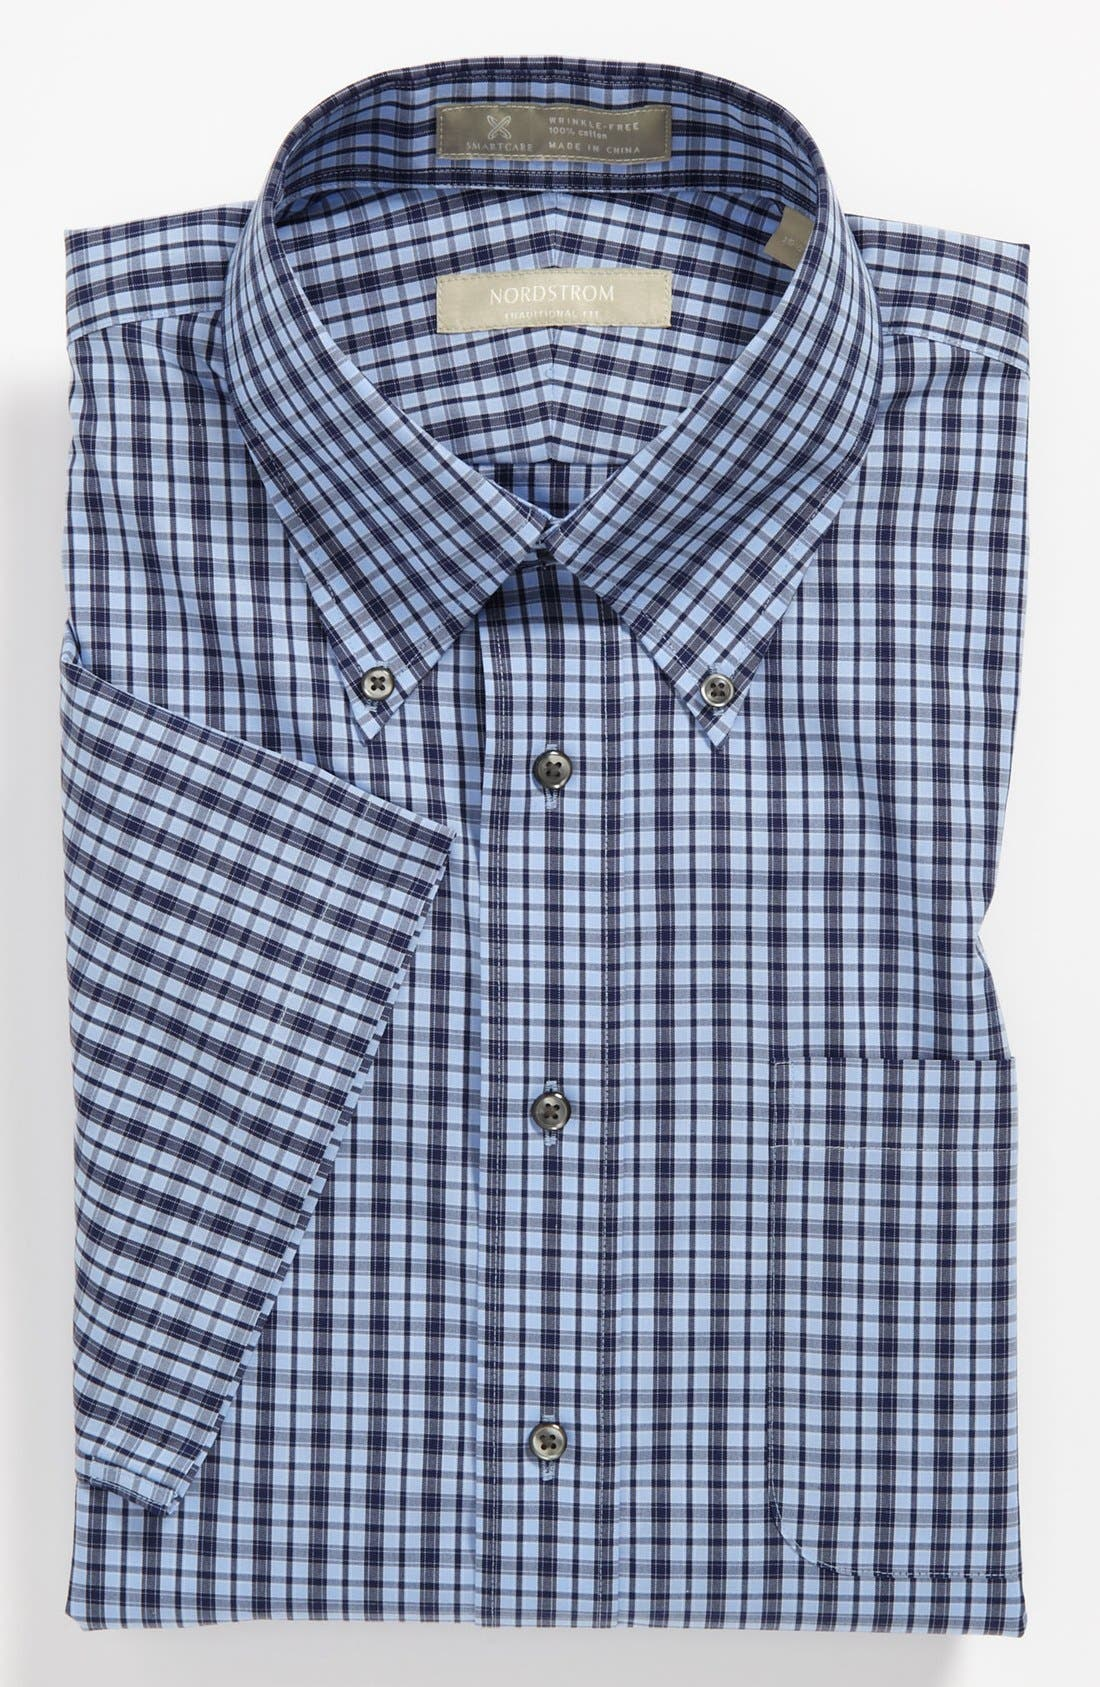 Alternate Image 1 Selected - Nordstrom Smartcare™ Wrinkle Free Traditional Fit Short Sleeve Dress Shirt